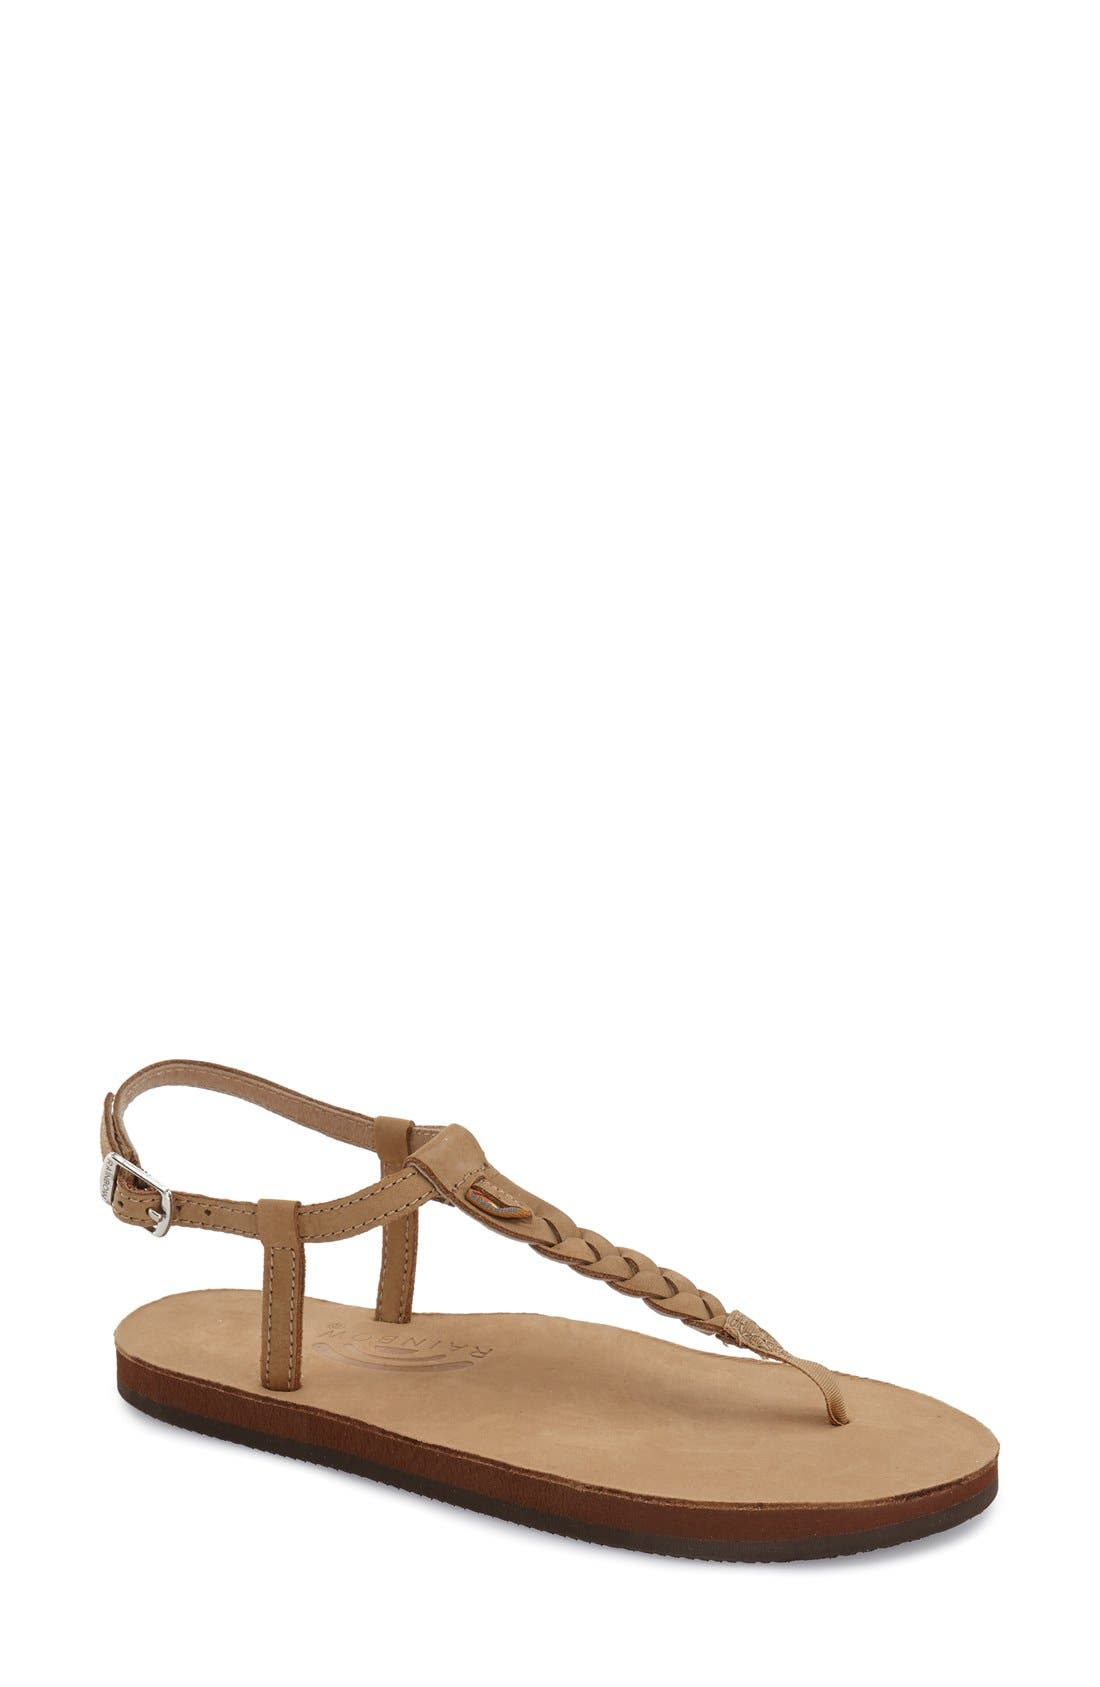 Alternate Image 1 Selected - Rainbow 'T-Street' Braided T-Strap Sandal (Women)